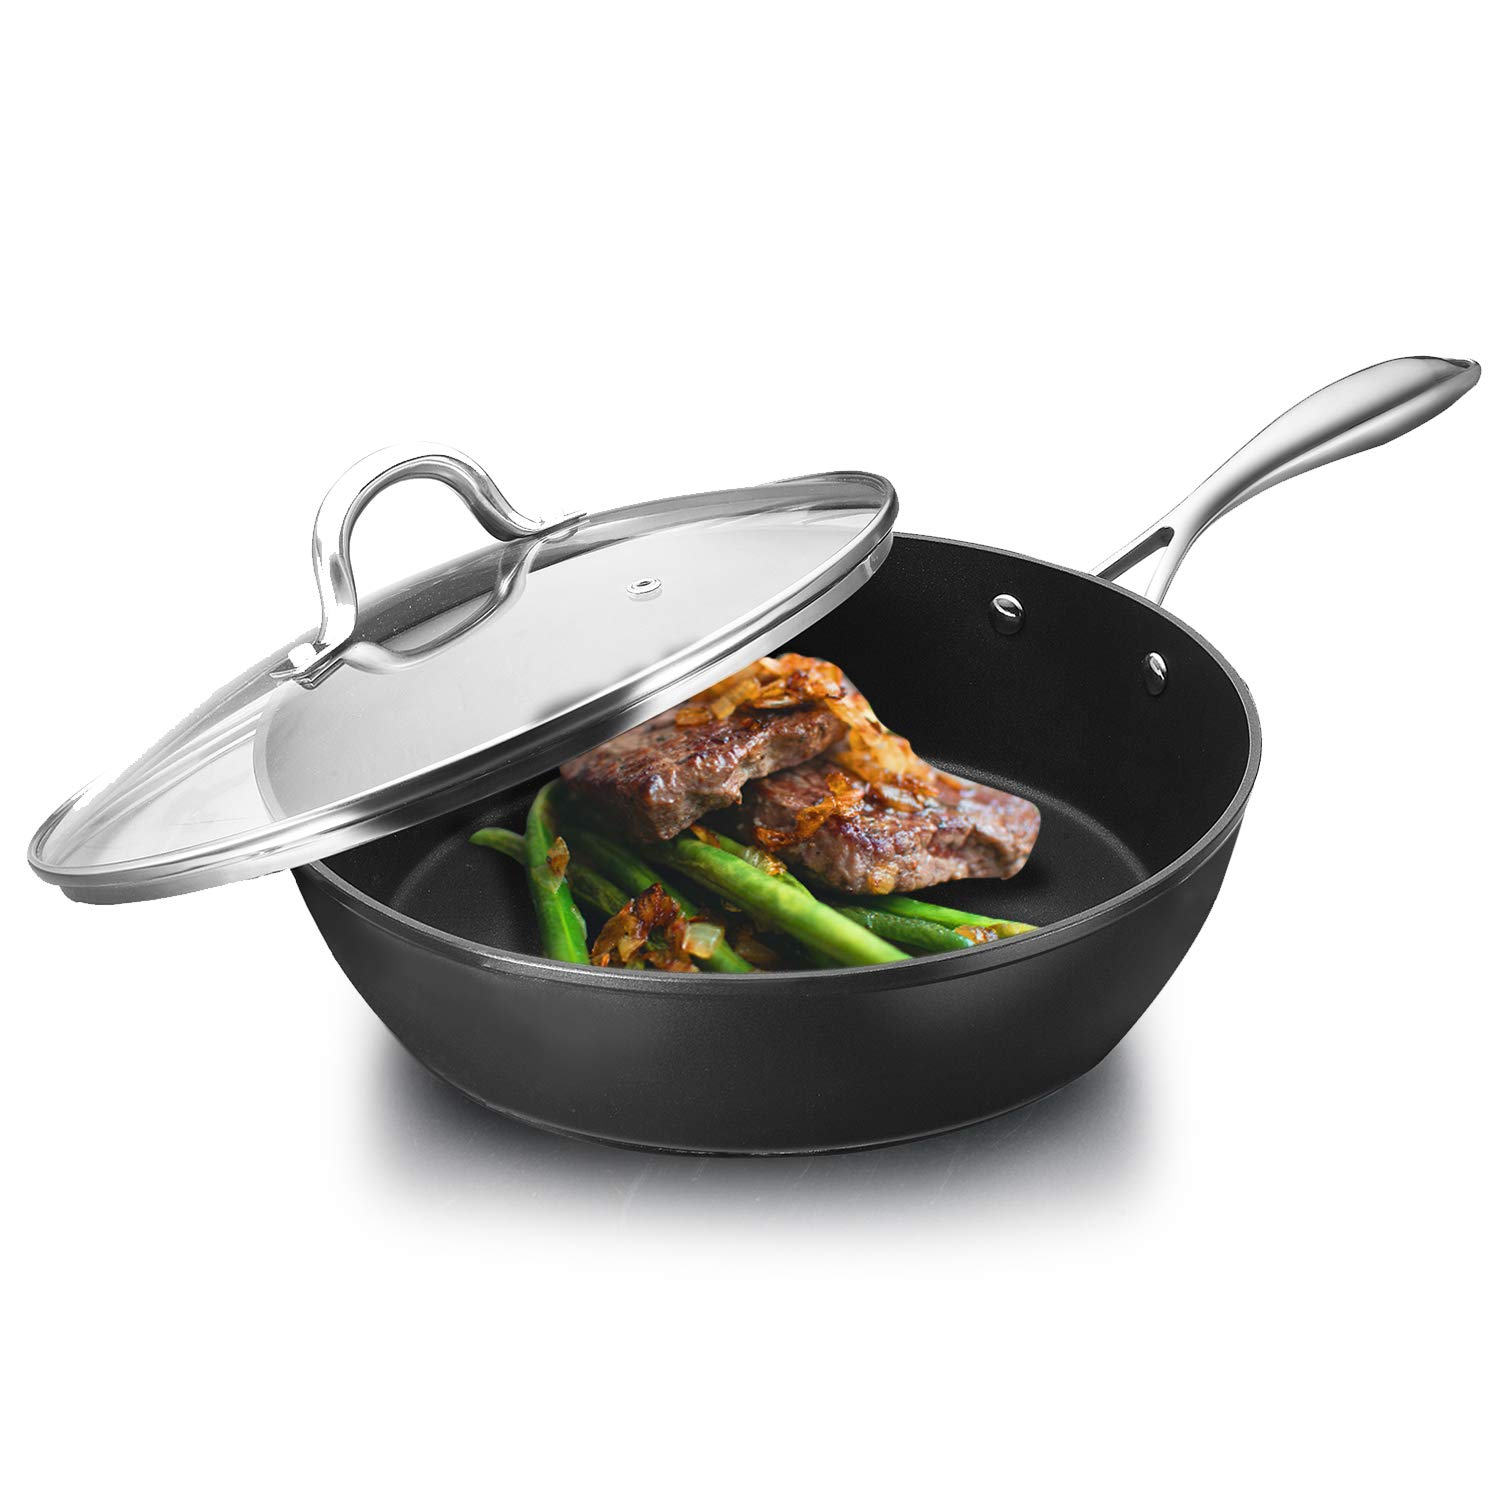 COOKER KING Nonstick Saute Pan, 11-Inch Frying Pan with Lid, Induction Compatible, Dishwasher Safe, Oven Safe, Multi-Function Skillet with Stainless Steel Handle by COOKER KING